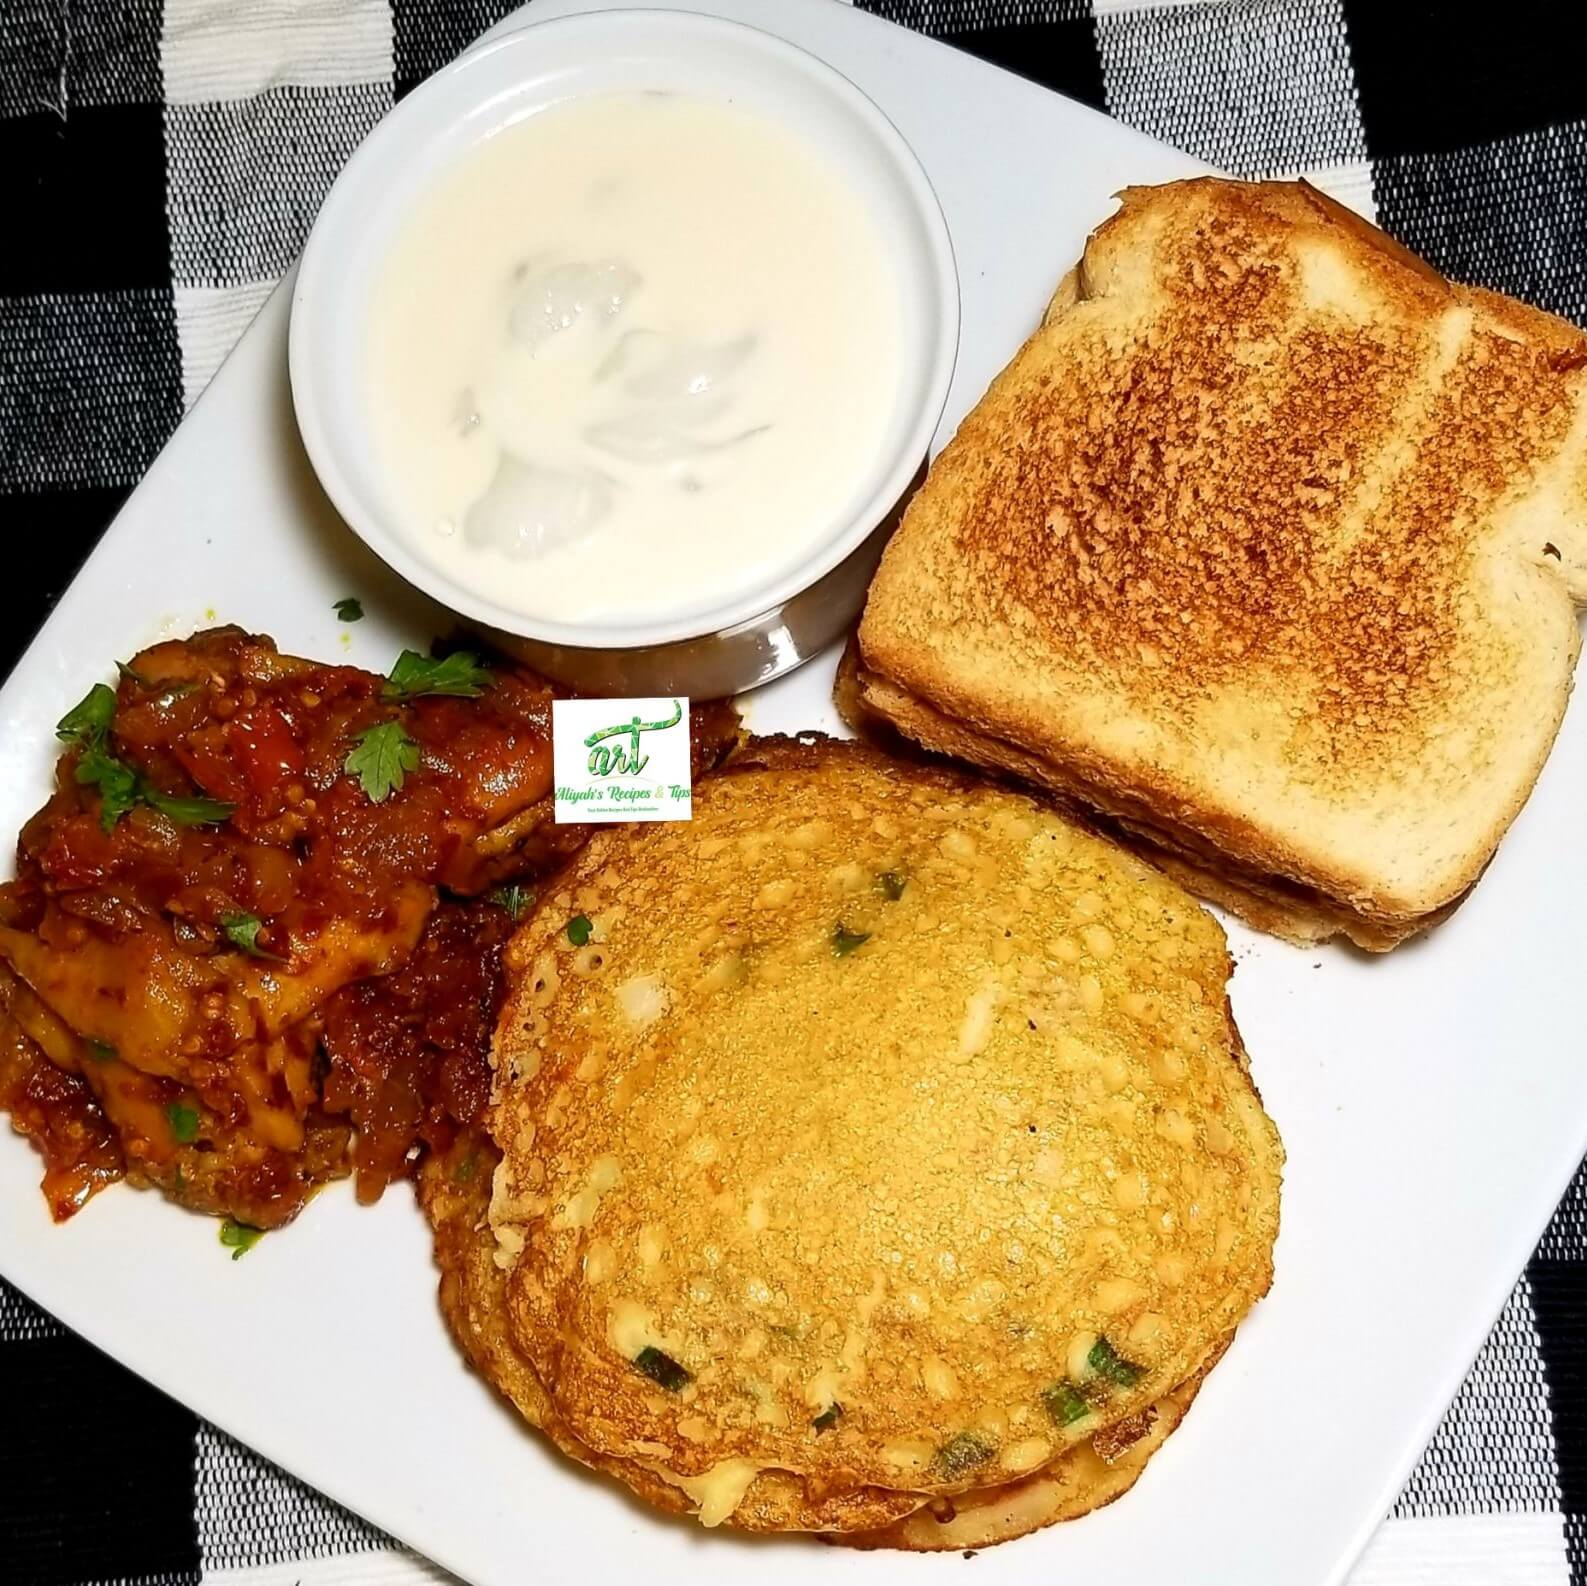 Akara, black -eyed pea fritters, How to make Akara, Akara in new dimension, Akara recipe, Koko da qosai, Akara, cowpeas, Kosai, Acara, Akara, moimoi, how to make akara, akara pancakes, akara recipe, akara sandwiches, African sandwiches, African burger, pap, African breakfast